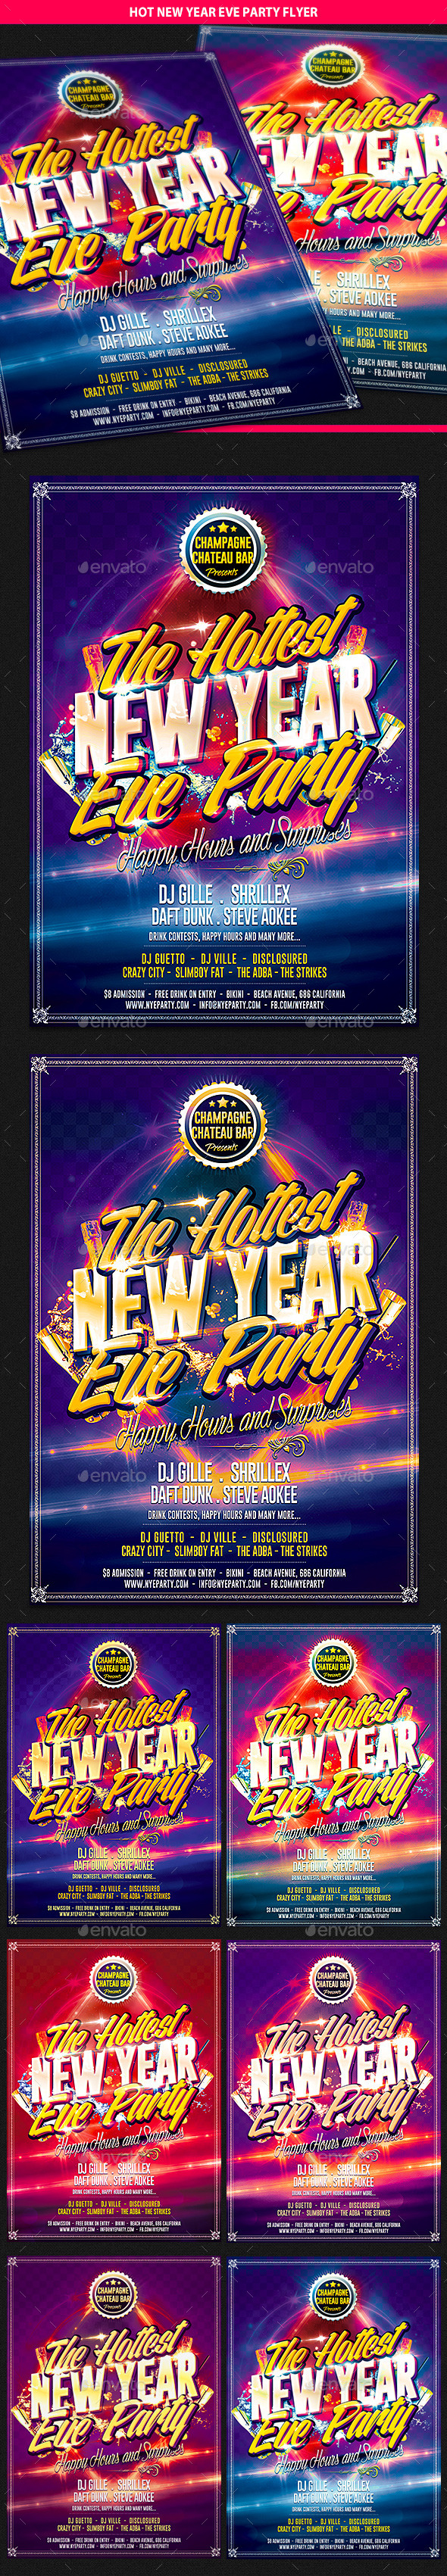 Hot New Year Eve Party Flyer - Clubs & Parties Events